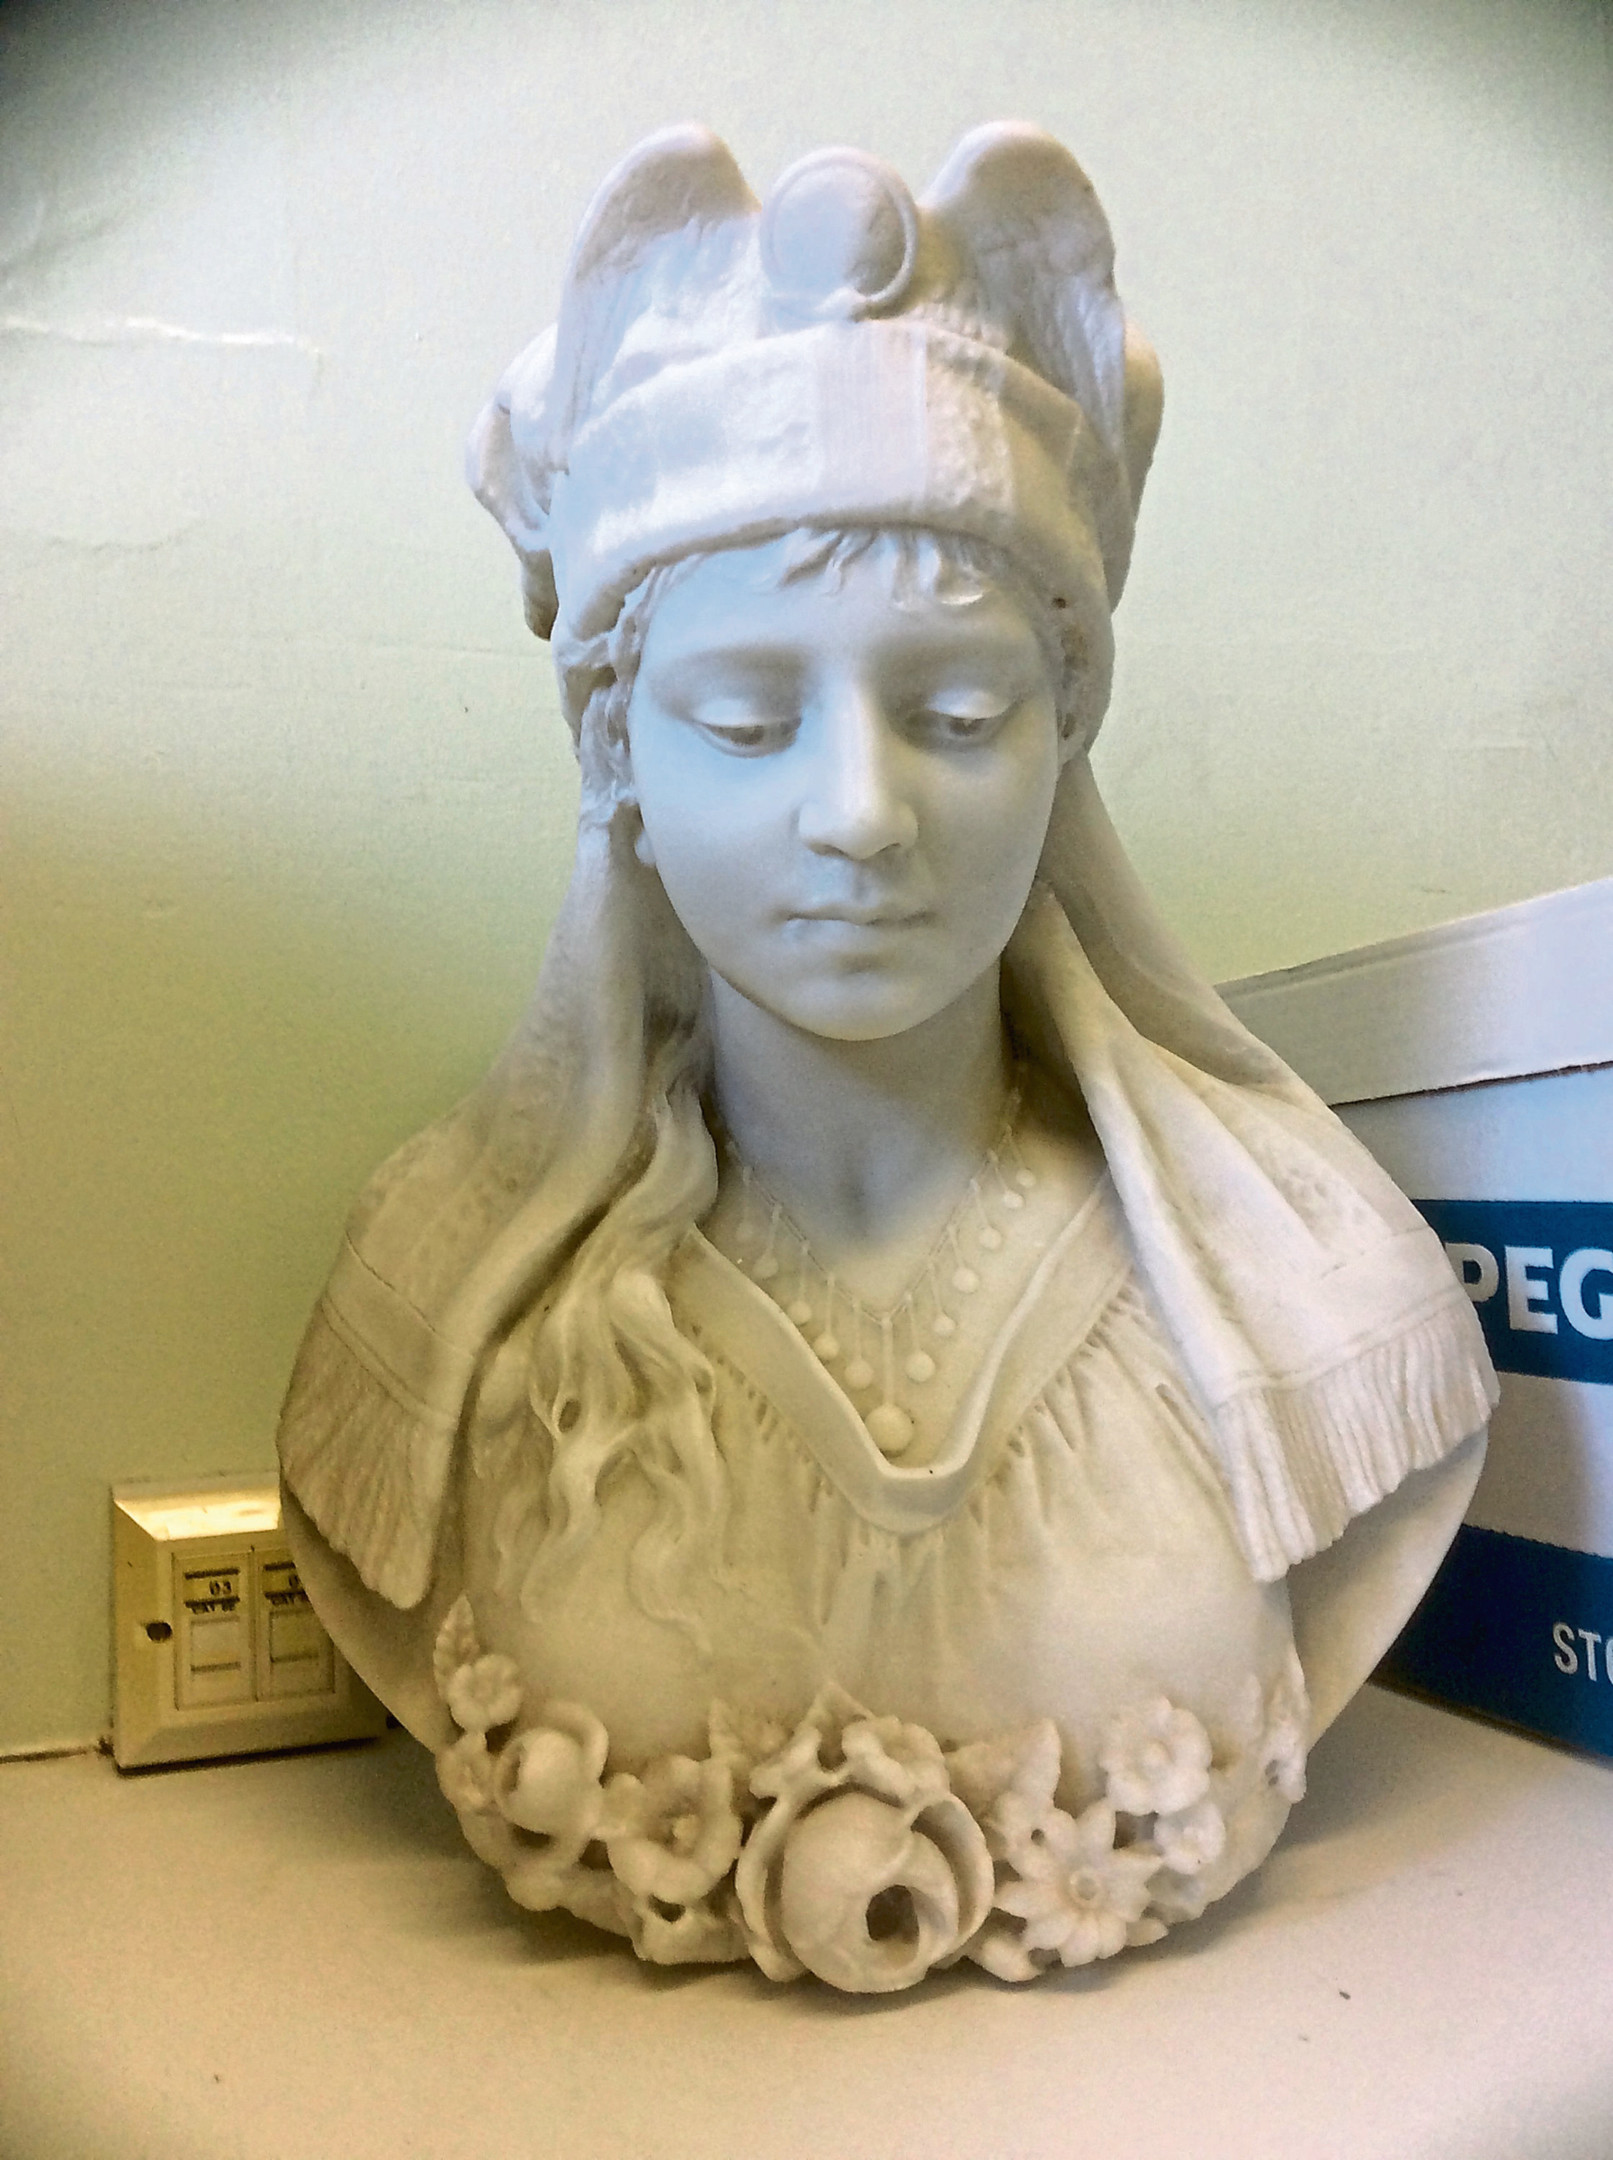 Montrose Infirmary is seeking infomation on the subject of the marble bust.